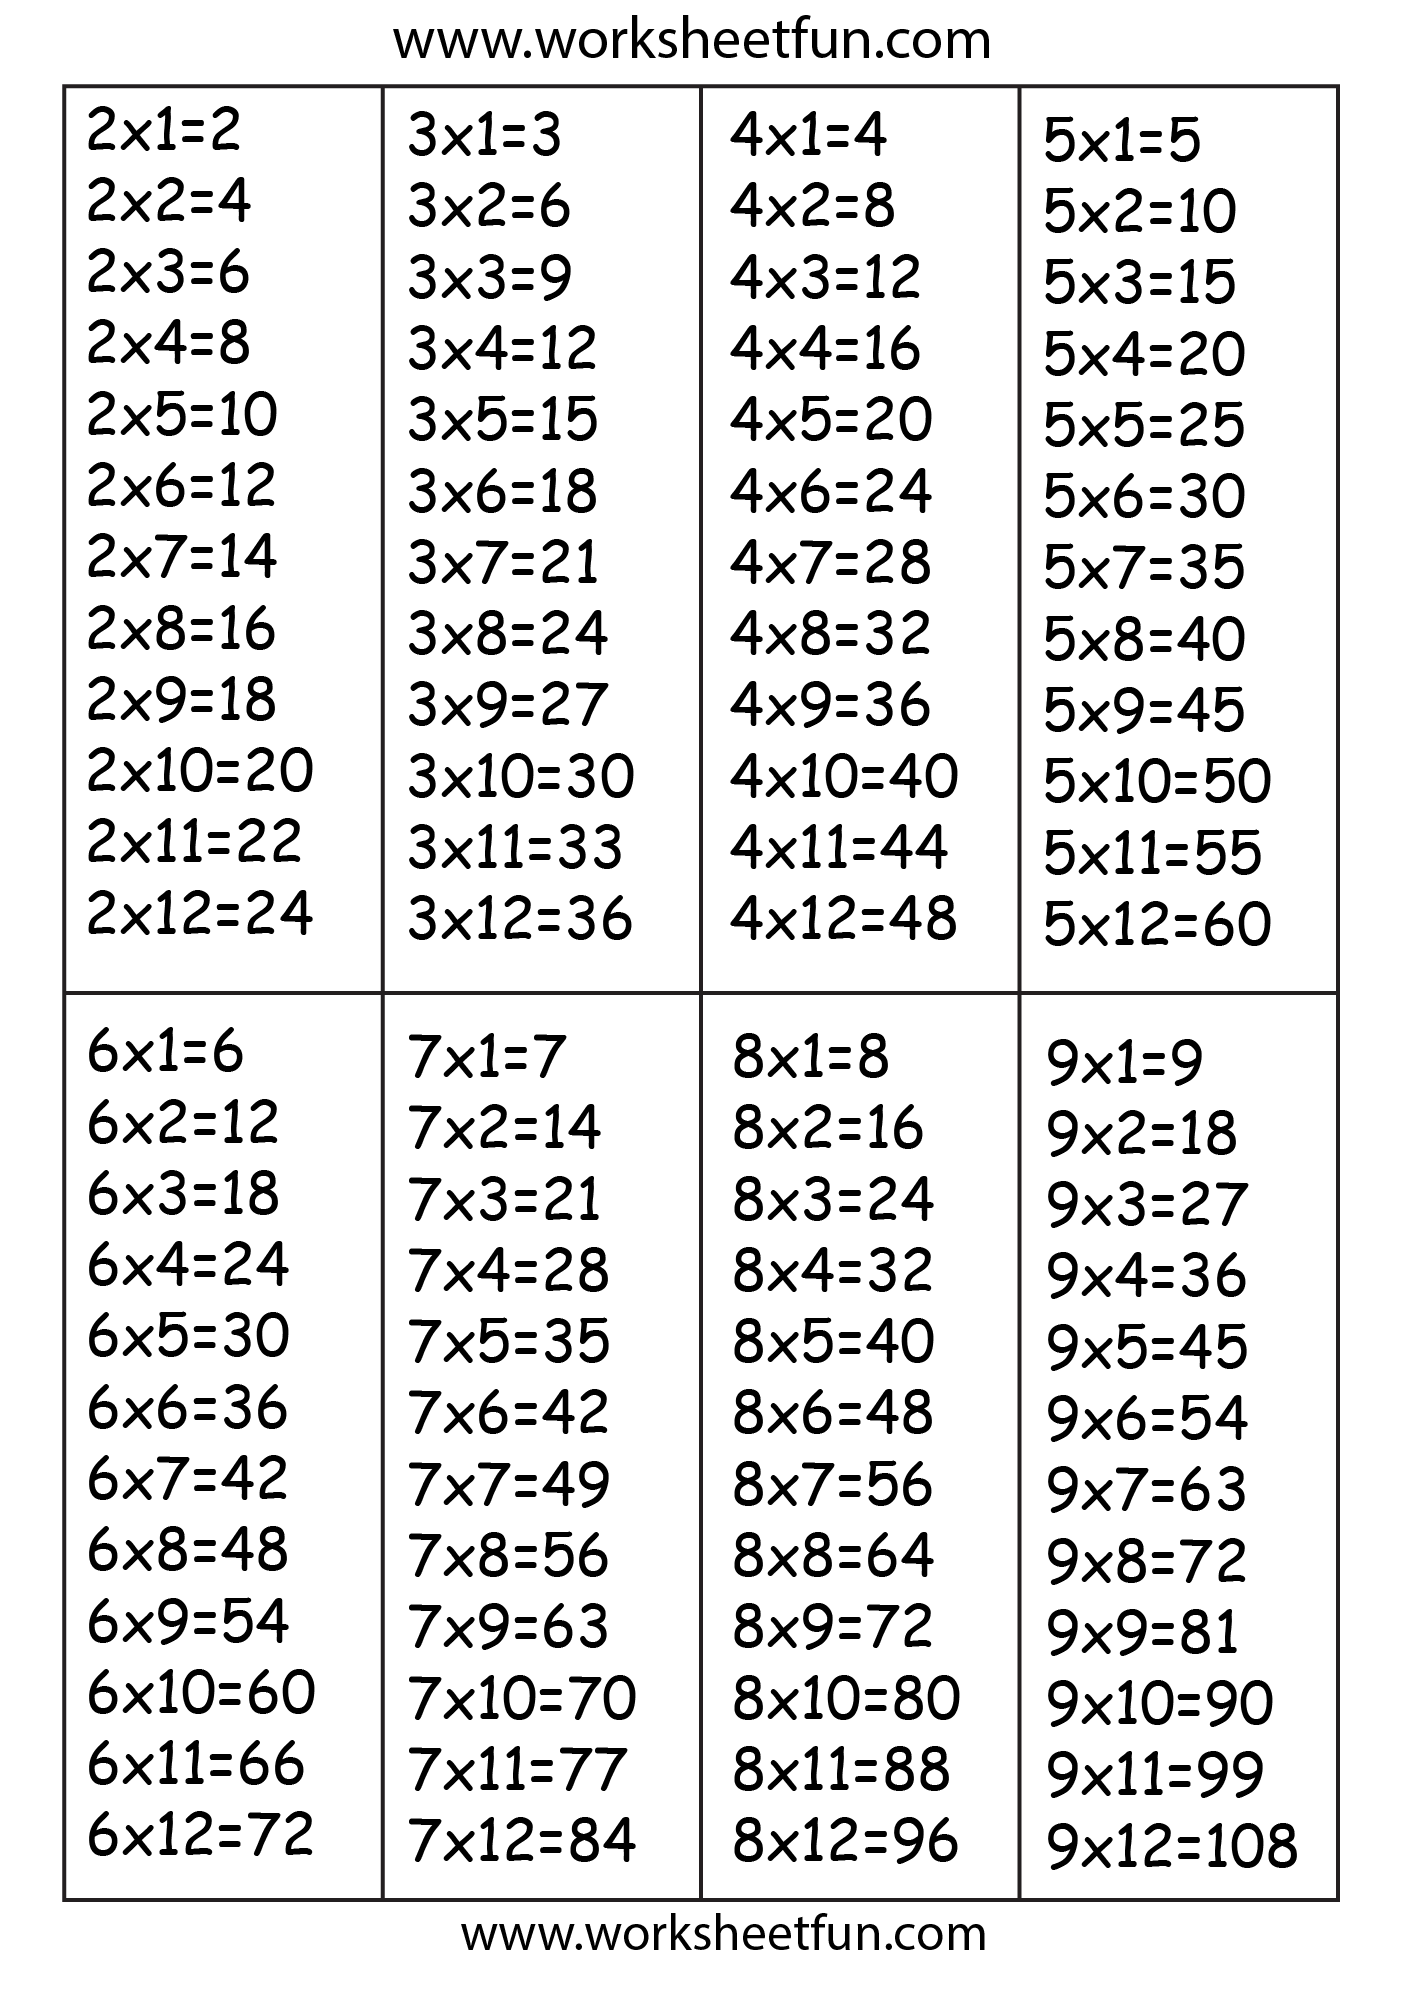 Times Table Chart With Images